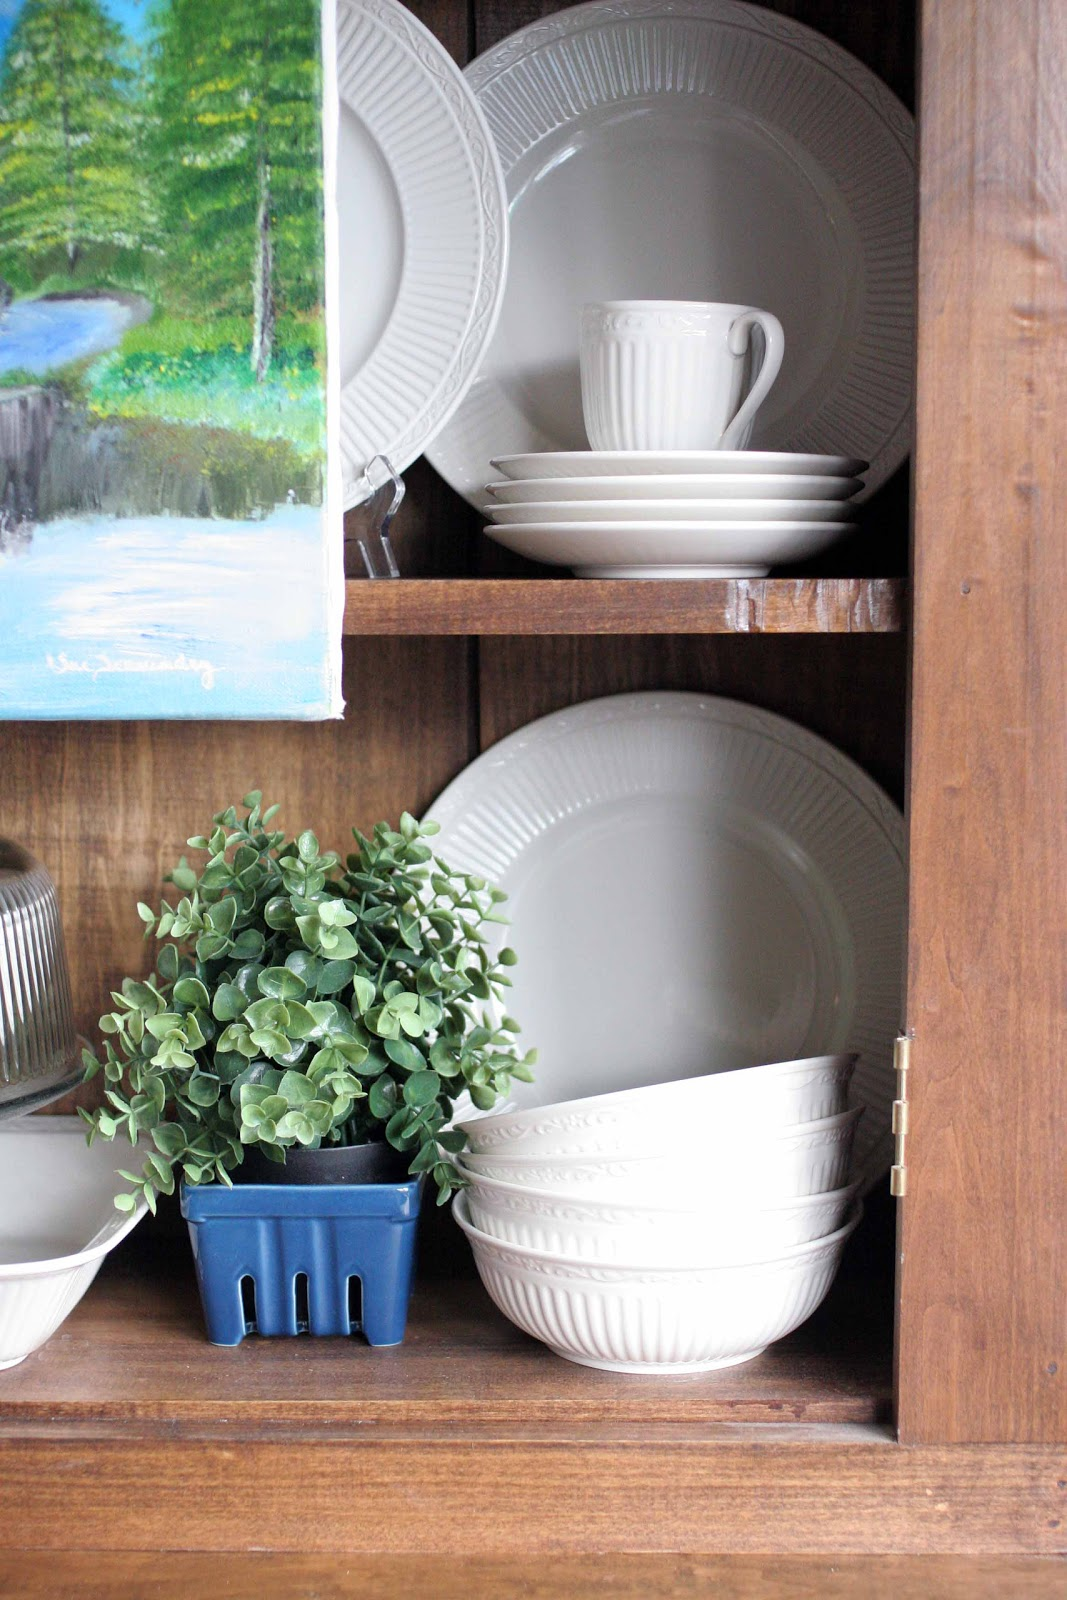 http://craftivitydesigns.blogspot.com/2013/01/white-dishes-wood-hutch-organized-and.html